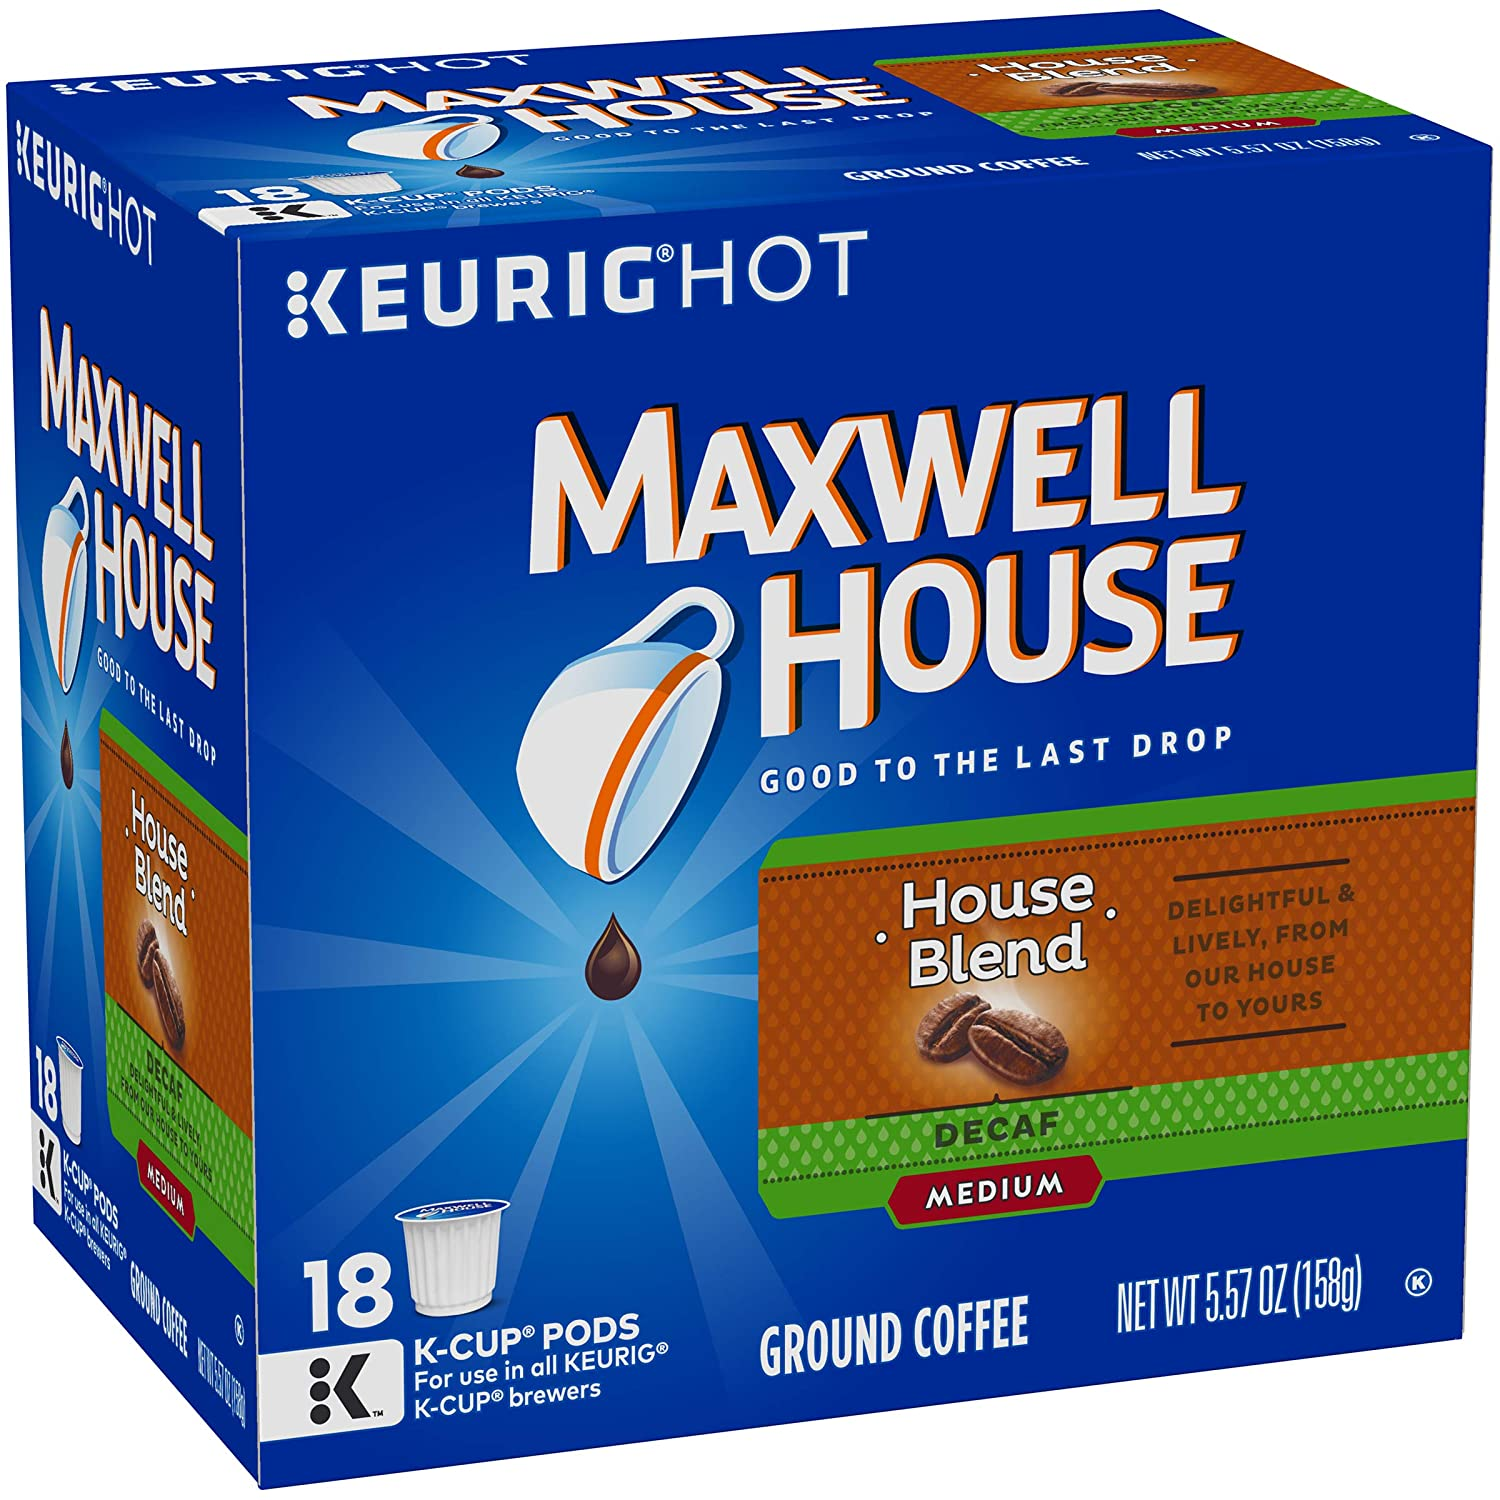 Maxwell House Decaf House Blend Medium Roast K-Cup Coffee Pods (72 Pods, 4 Packs of 18)